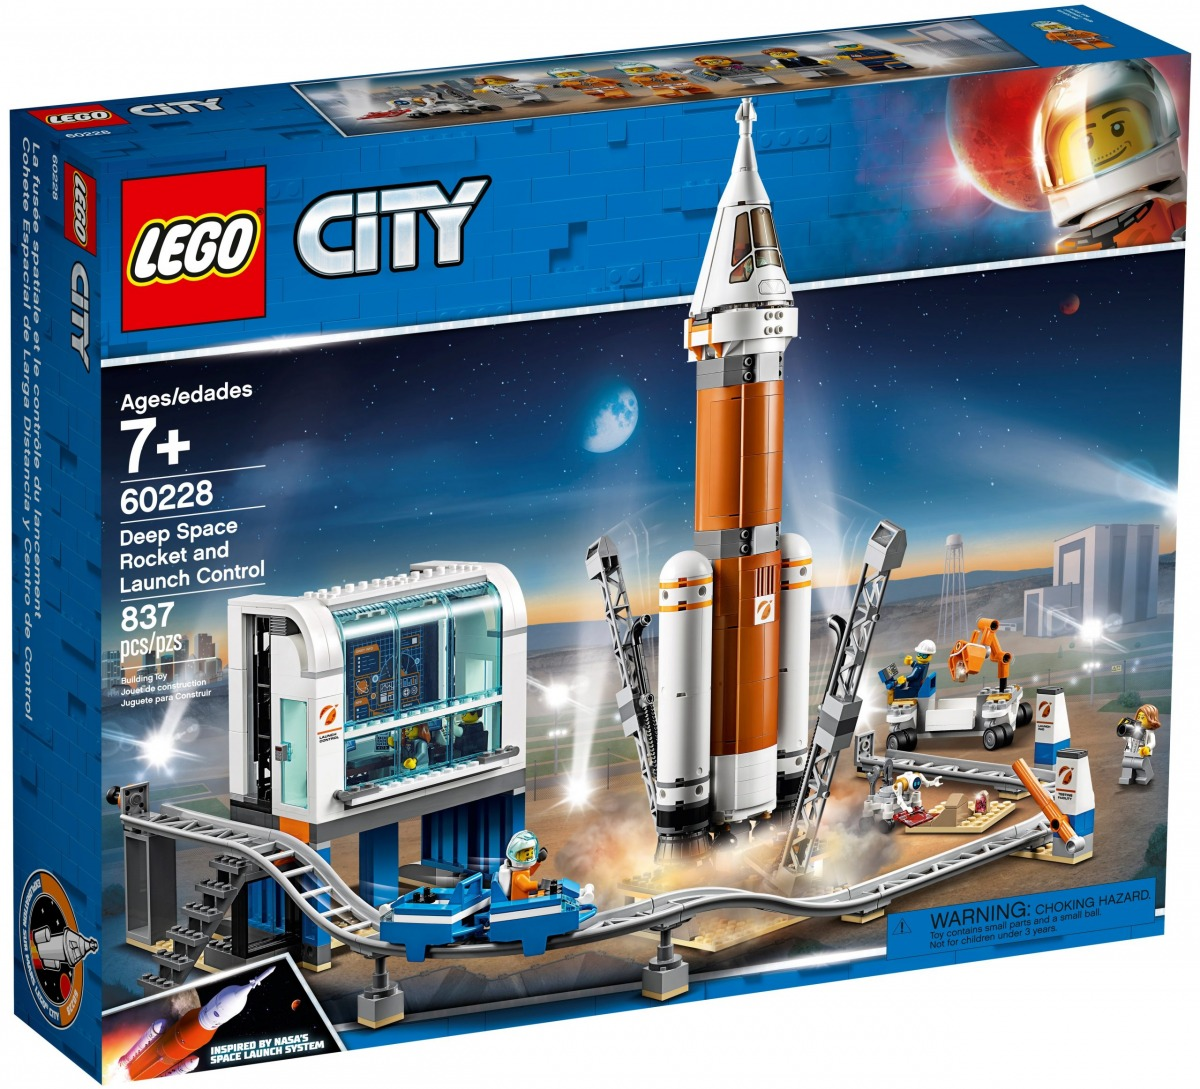 lego 60228 deep space rocket and launch control scaled